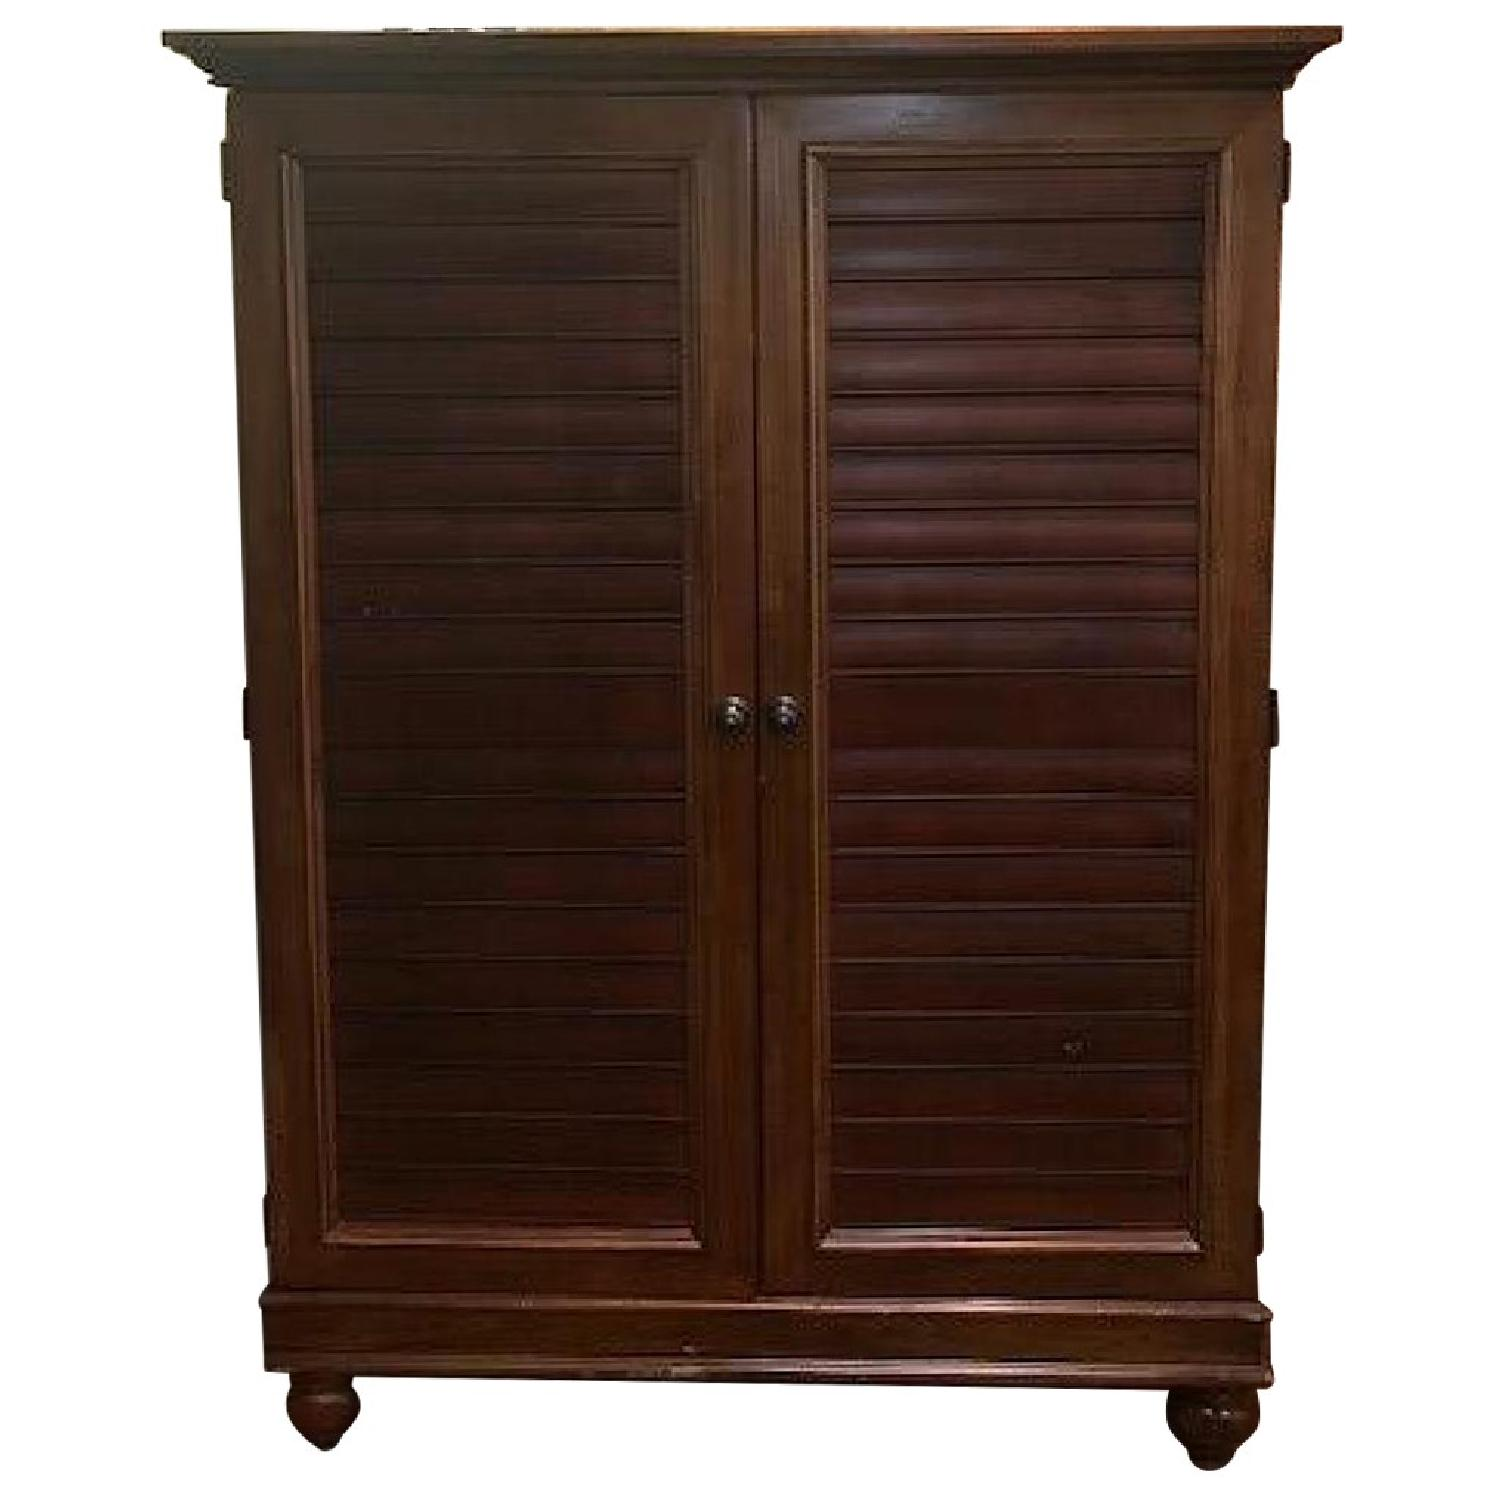 Hooker Furniture Media Cabinet/Armoire in Mahogany Finish - image-0